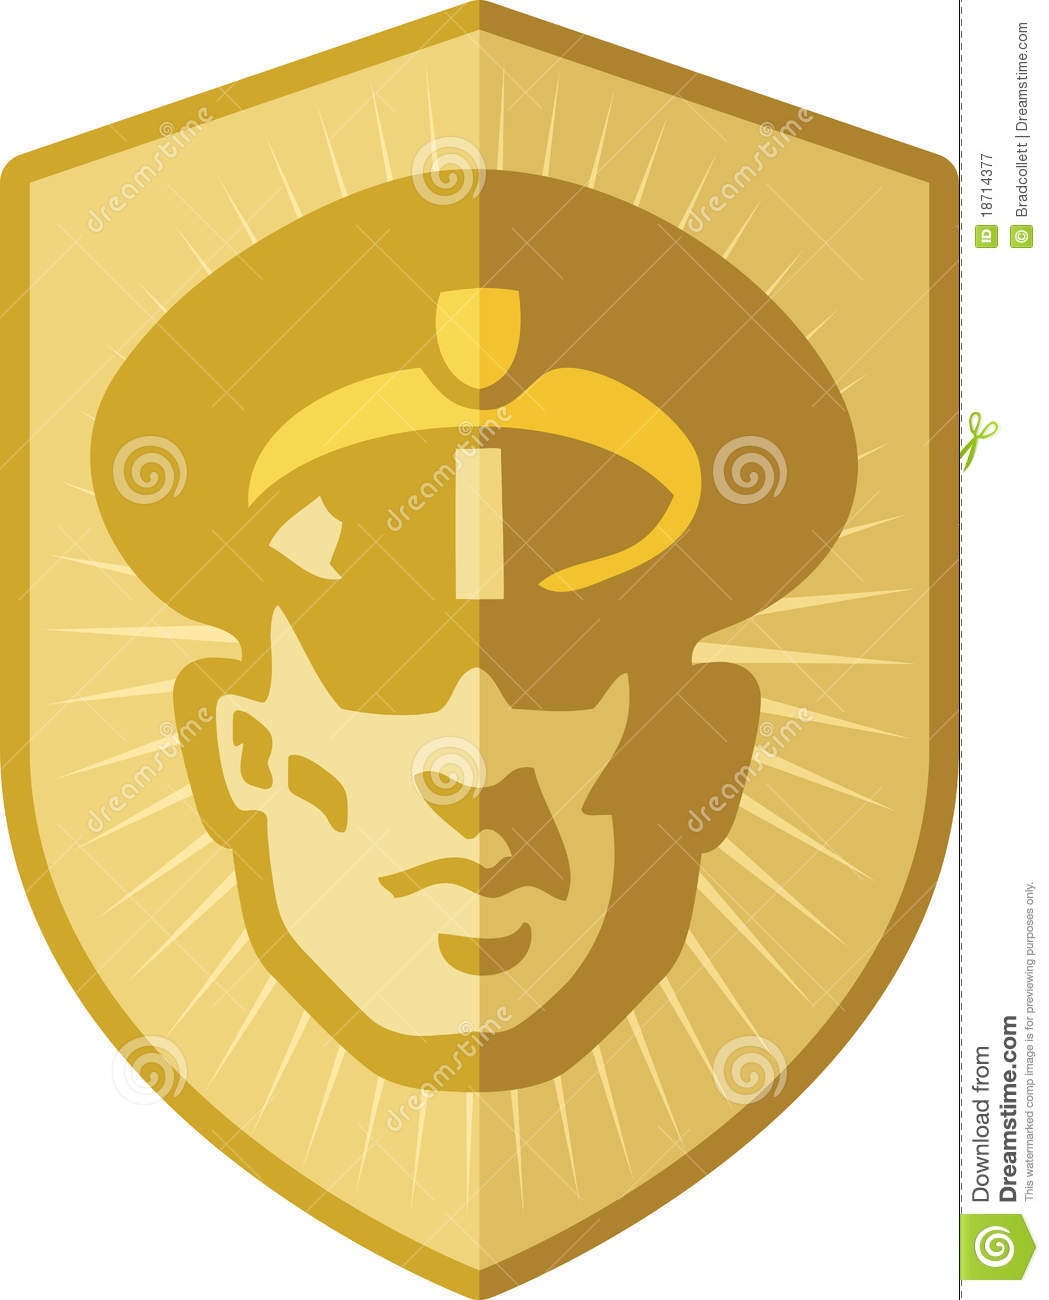 Security badge clipart png royalty free stock Security Guard Badge Clip Art #WIizQl - Clipart Kid png royalty free stock